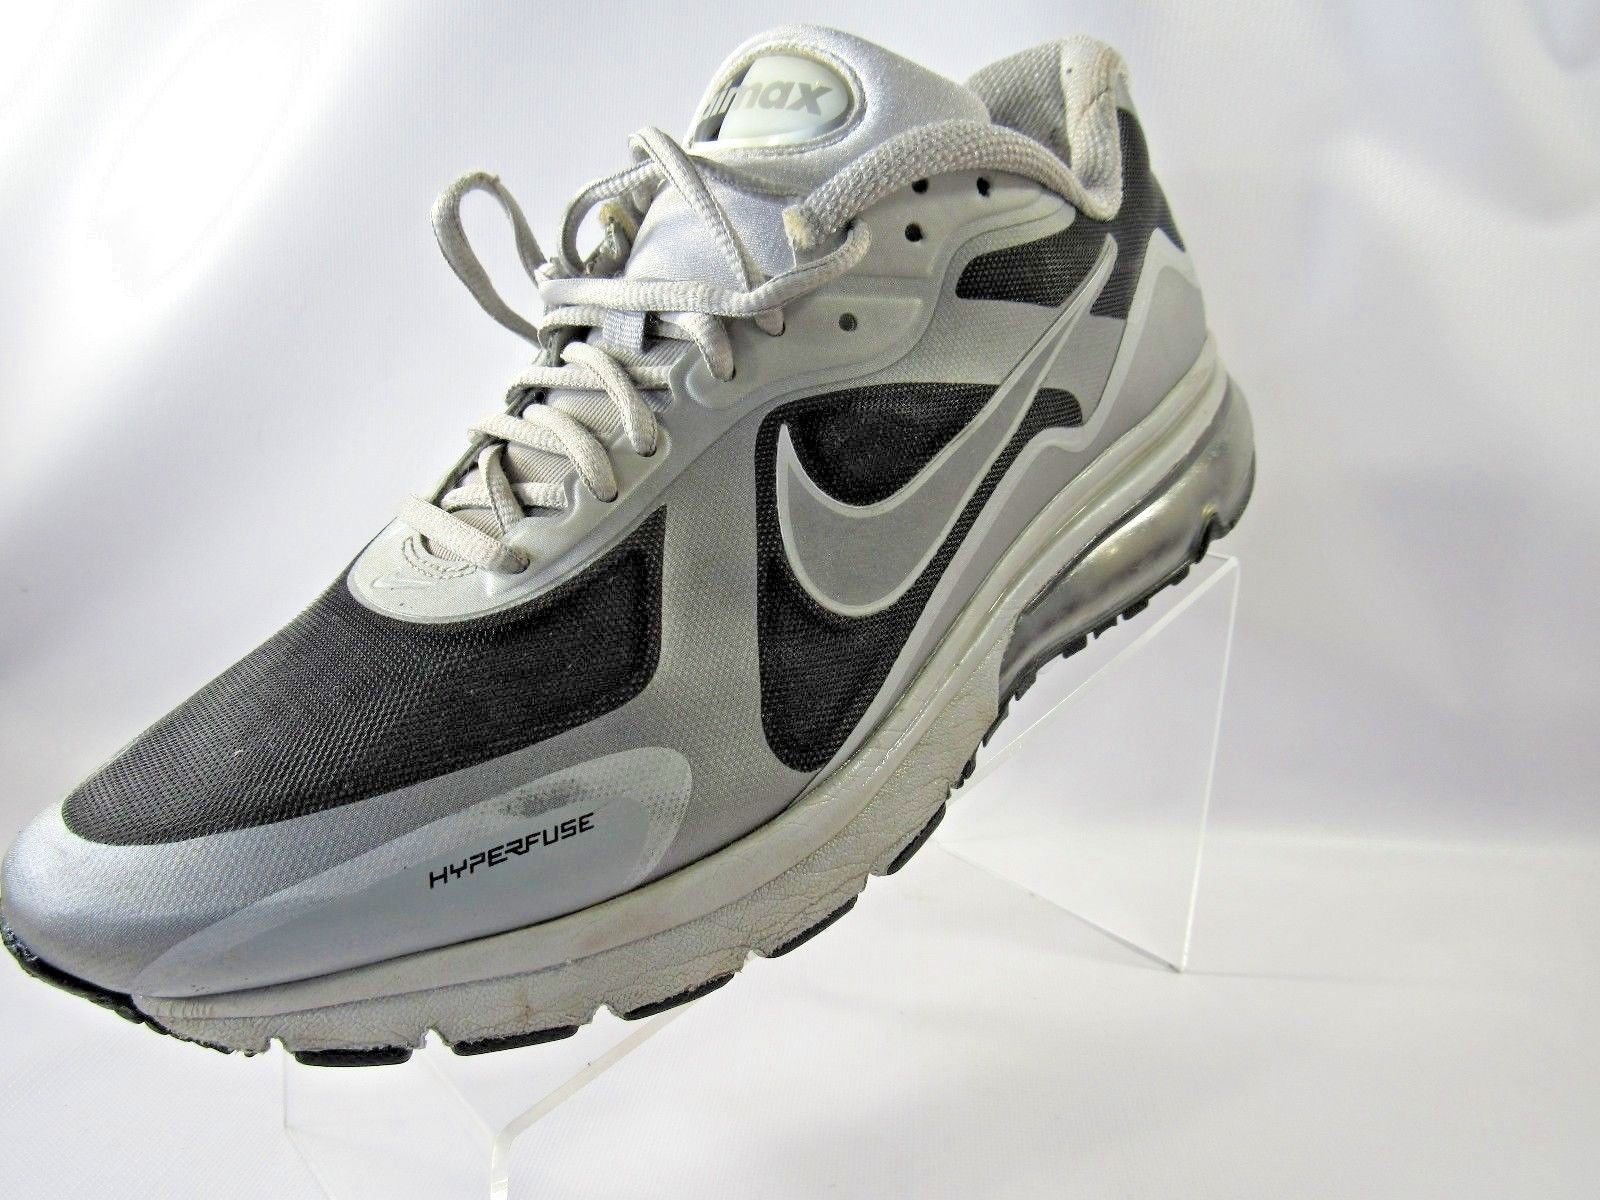 the best attitude 0d66d f5771 ... Nike Air Max Hyperfuse 454347-090 Size 12 M Black Silver Running Mens  Shoes ...